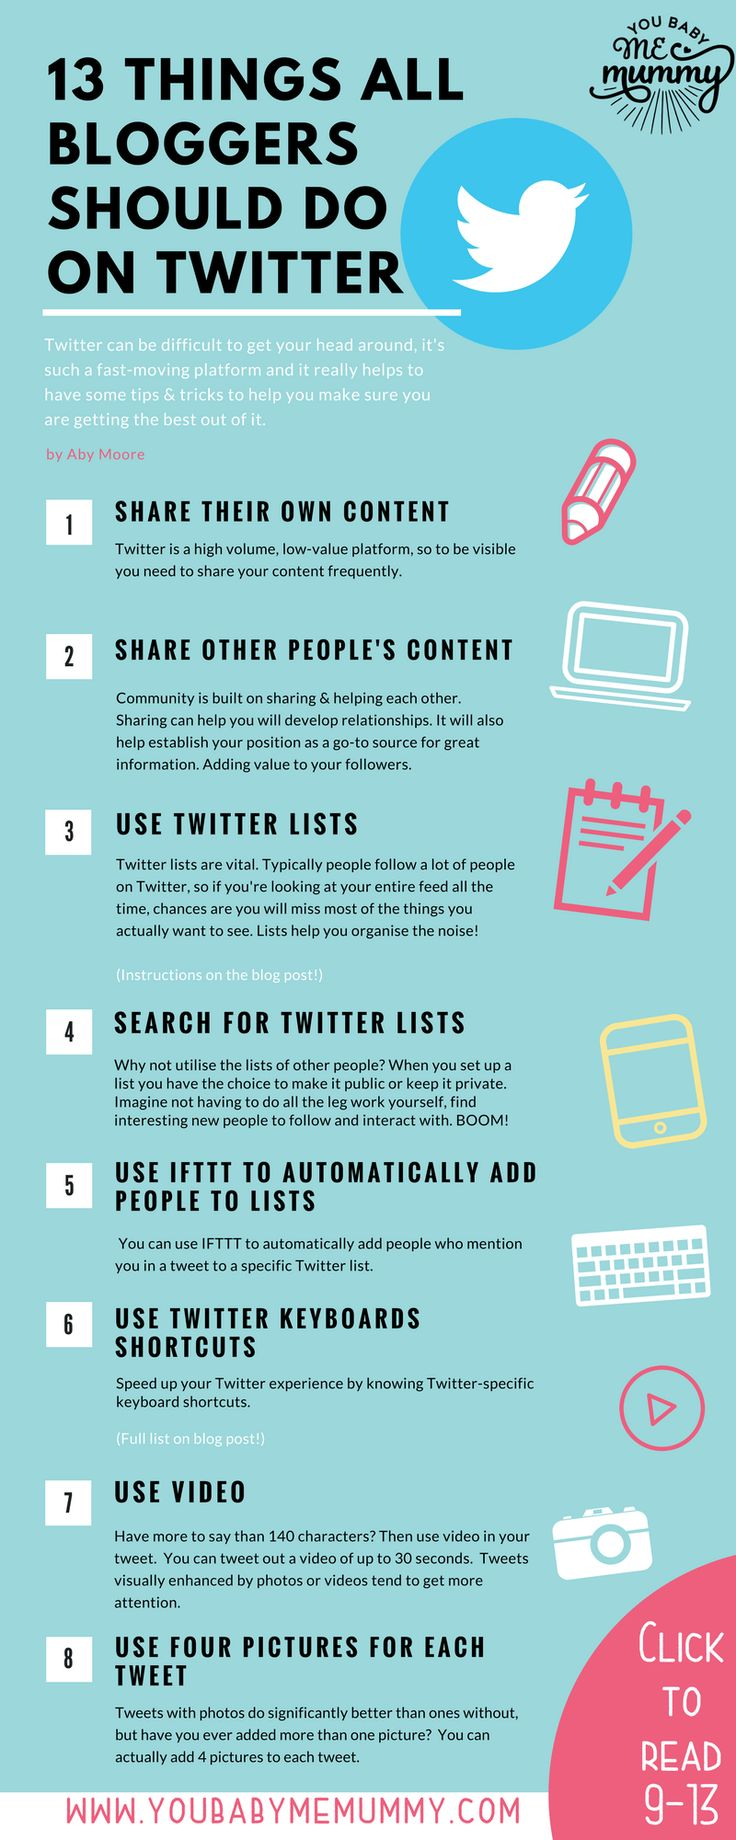 Do you struggle with Twitter? Realise you could get much more traffic from the network but unsure how to go about this? Read this post for 13 of my best Twitter tips for bloggers.